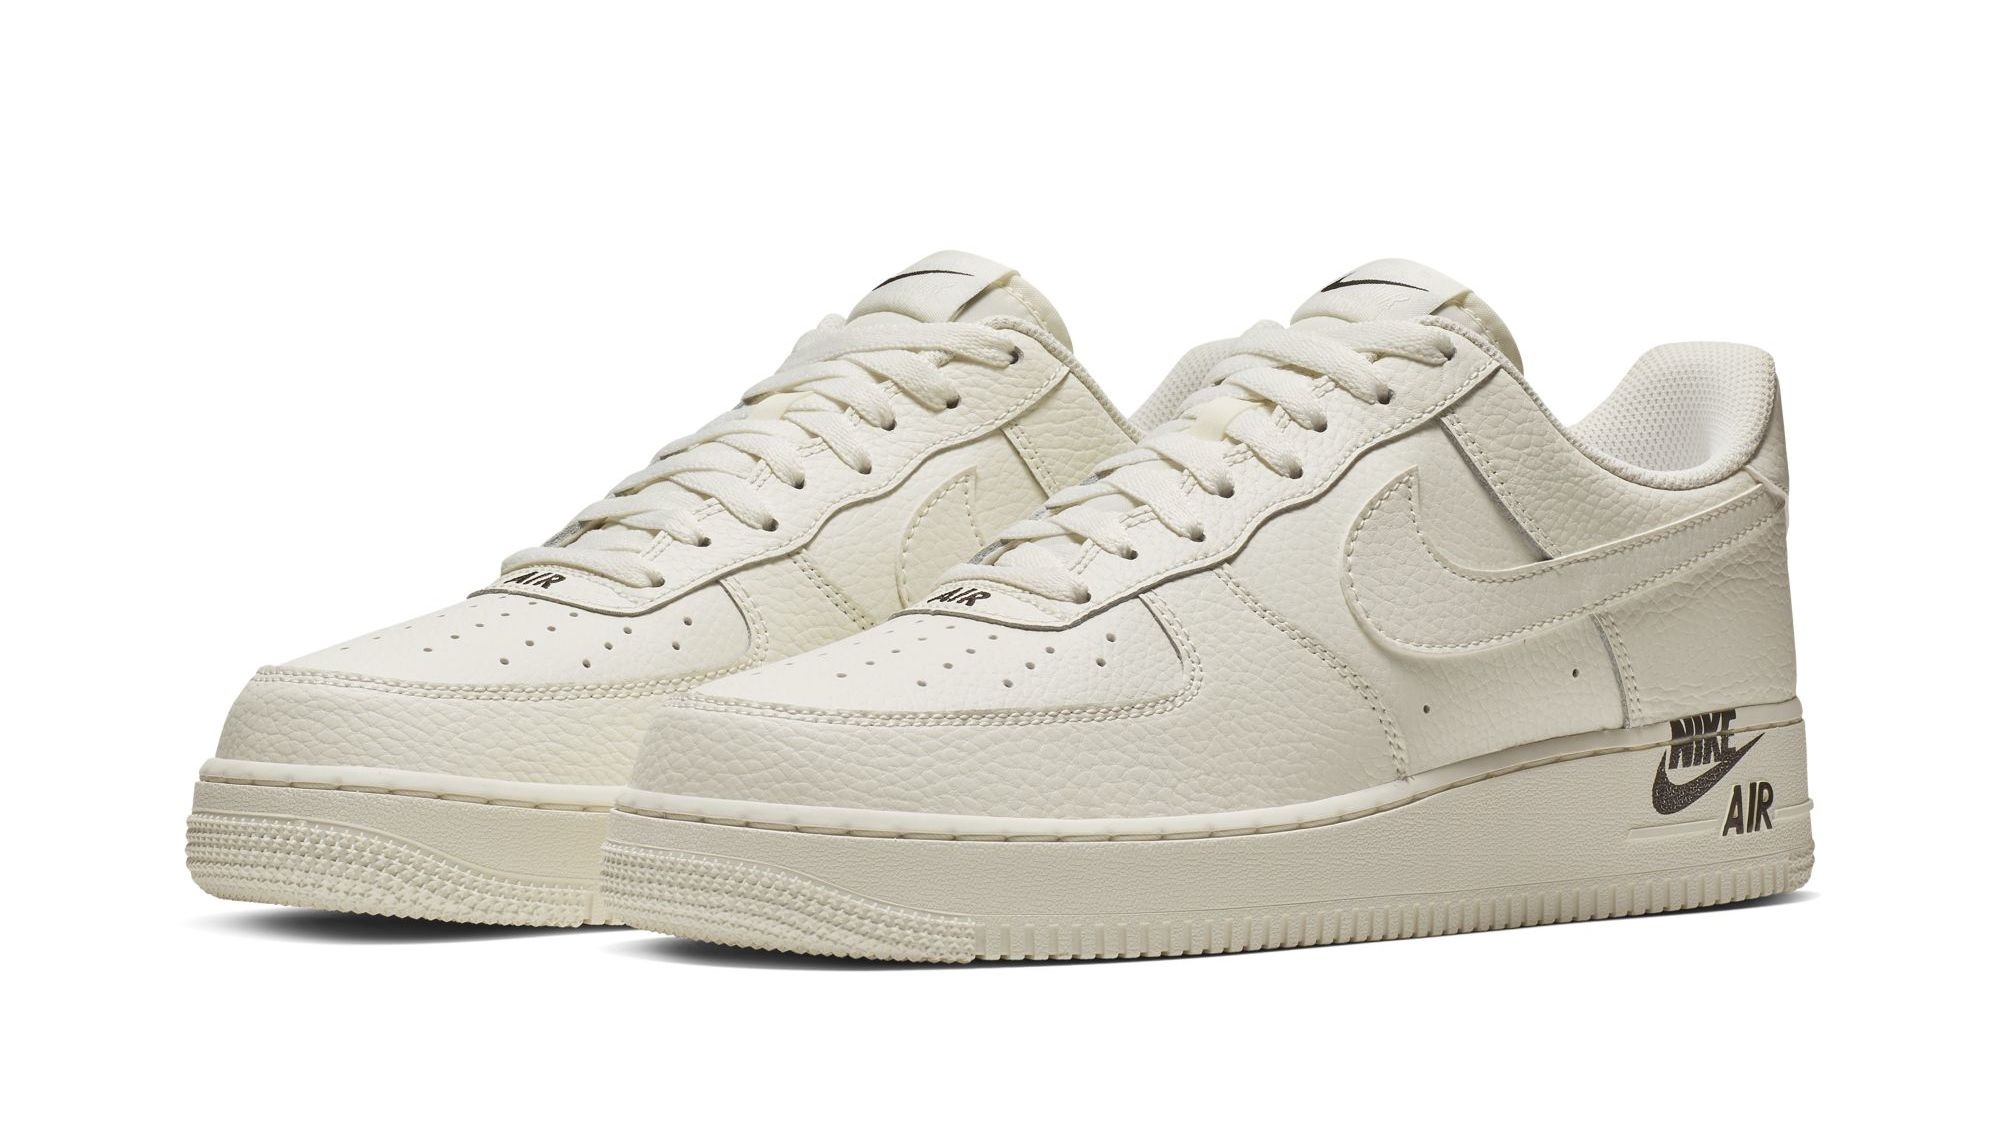 a1722fb90 Nike Air Force 1 Low '07 LTHR 'Sail' 'Team Red' Images | Sole Collector